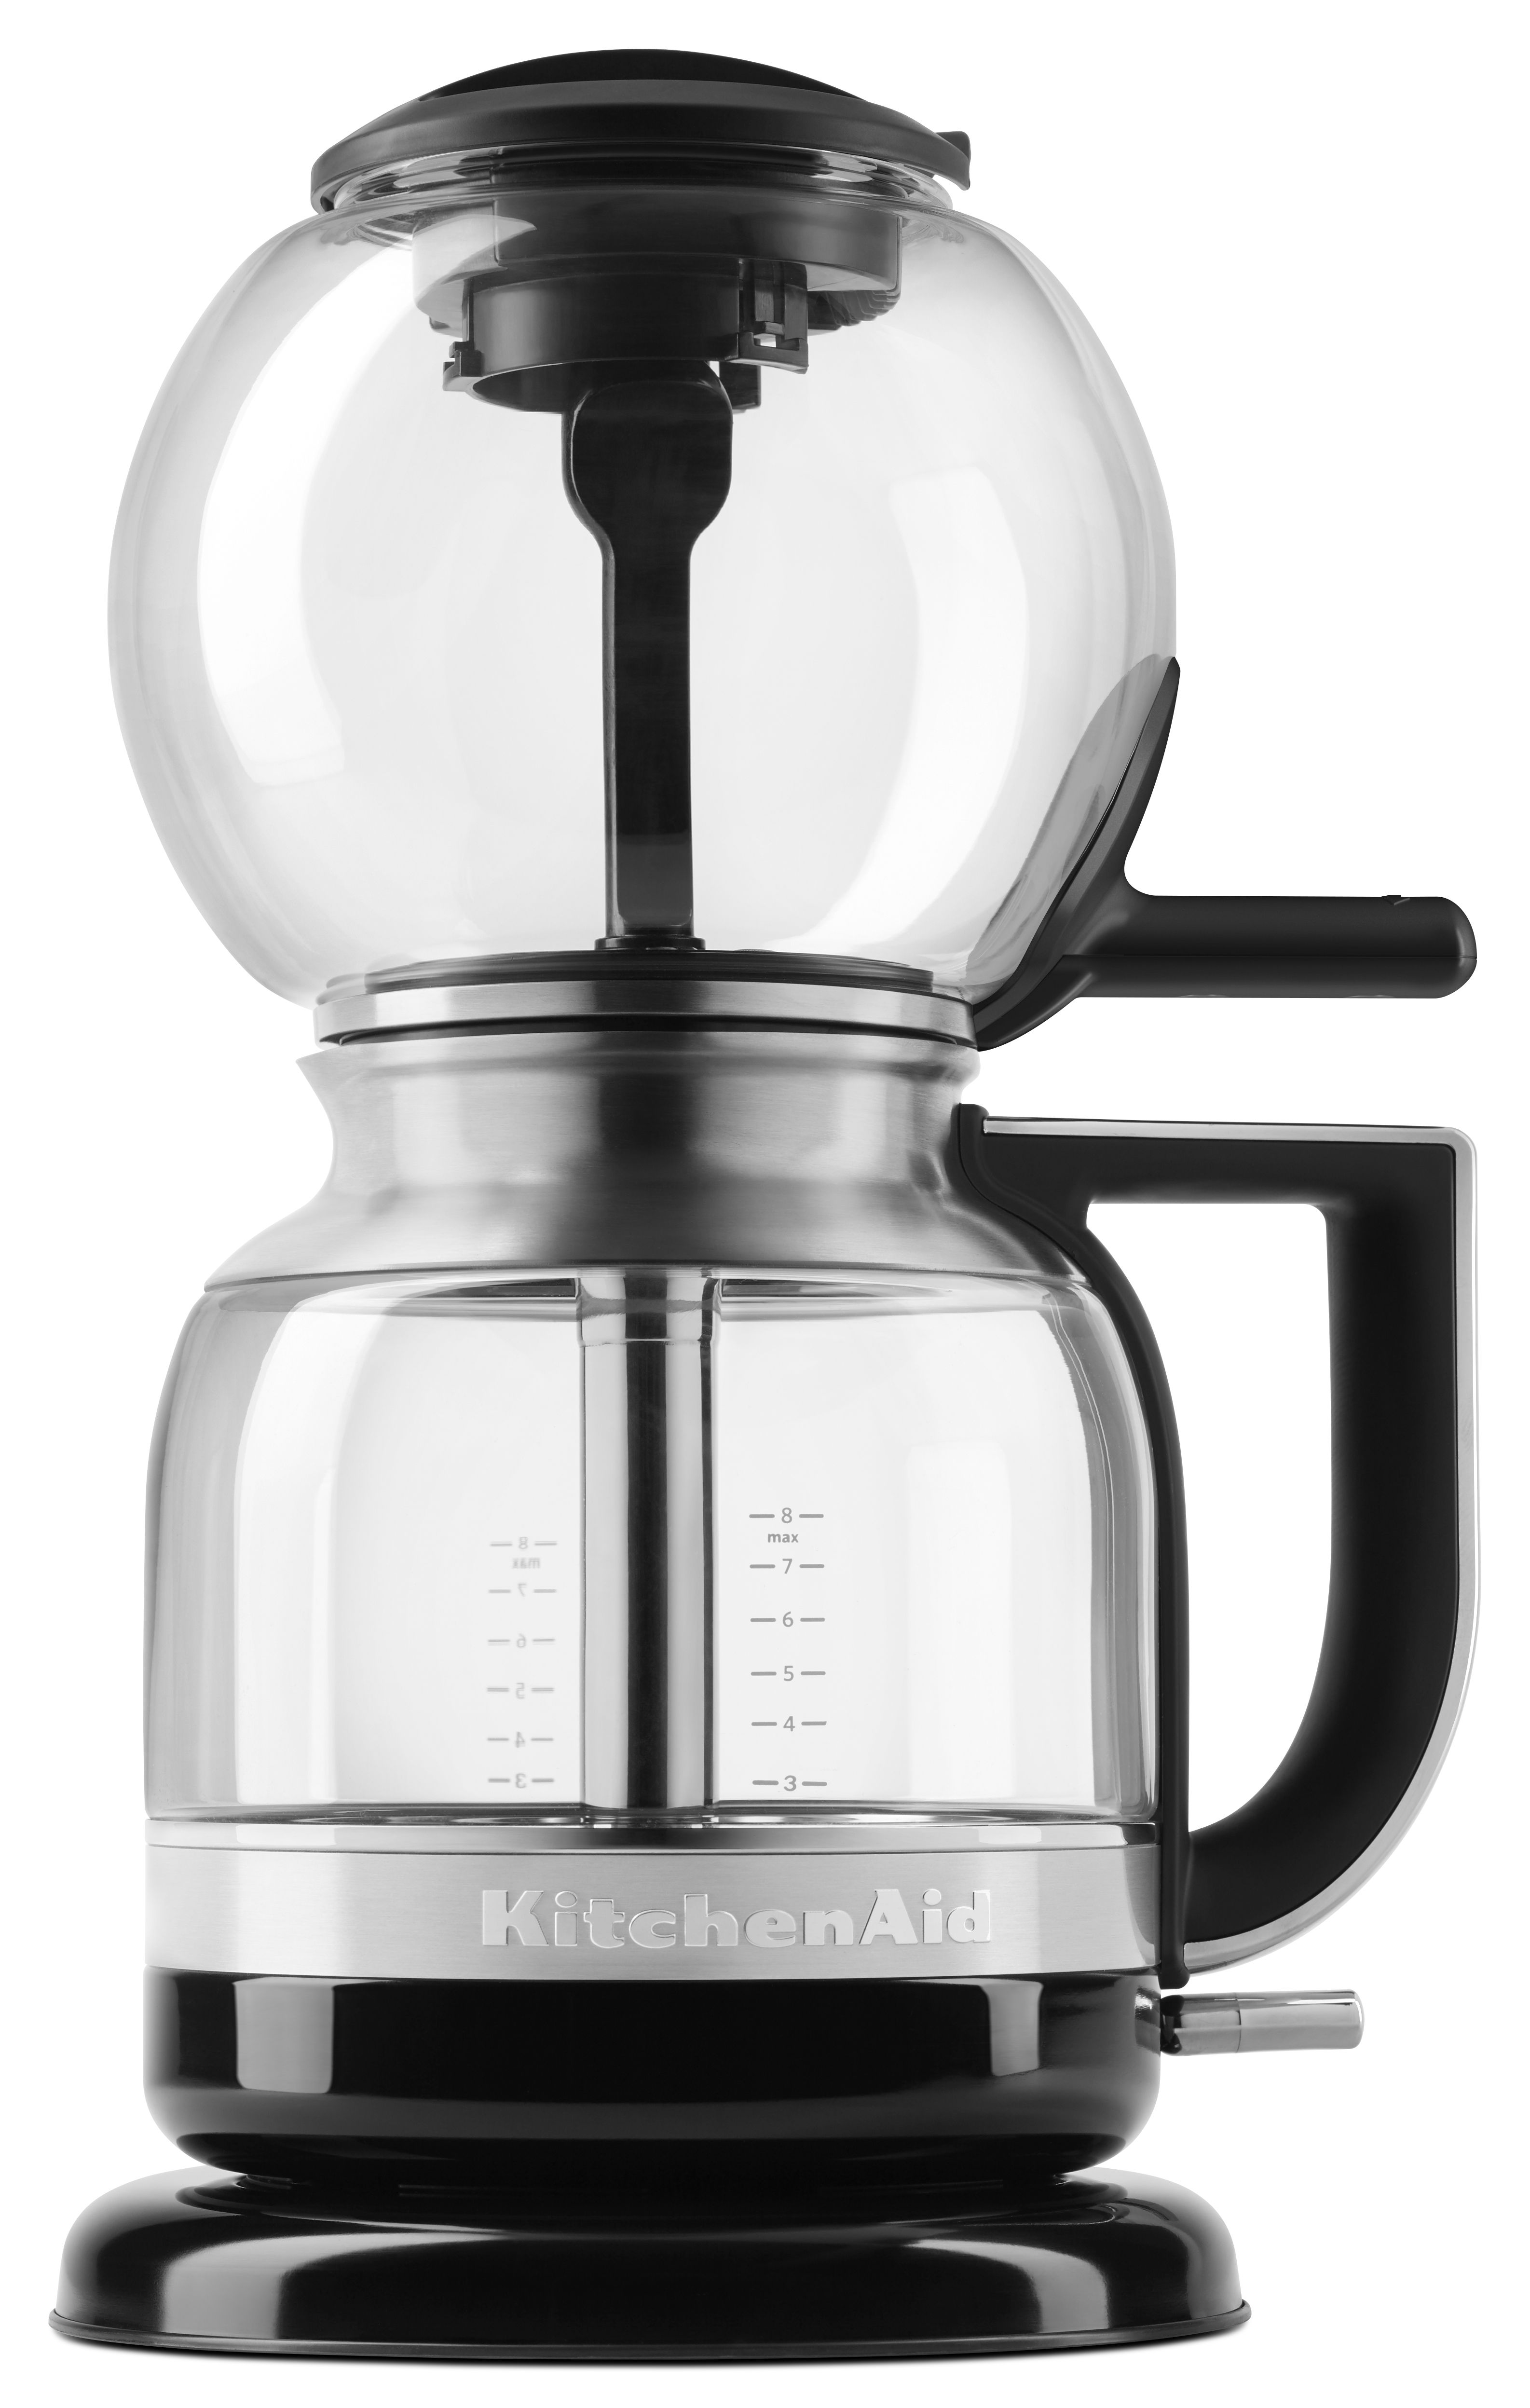 Kitchenaid Siphon Coffee Brewer Features Vacuum Technology